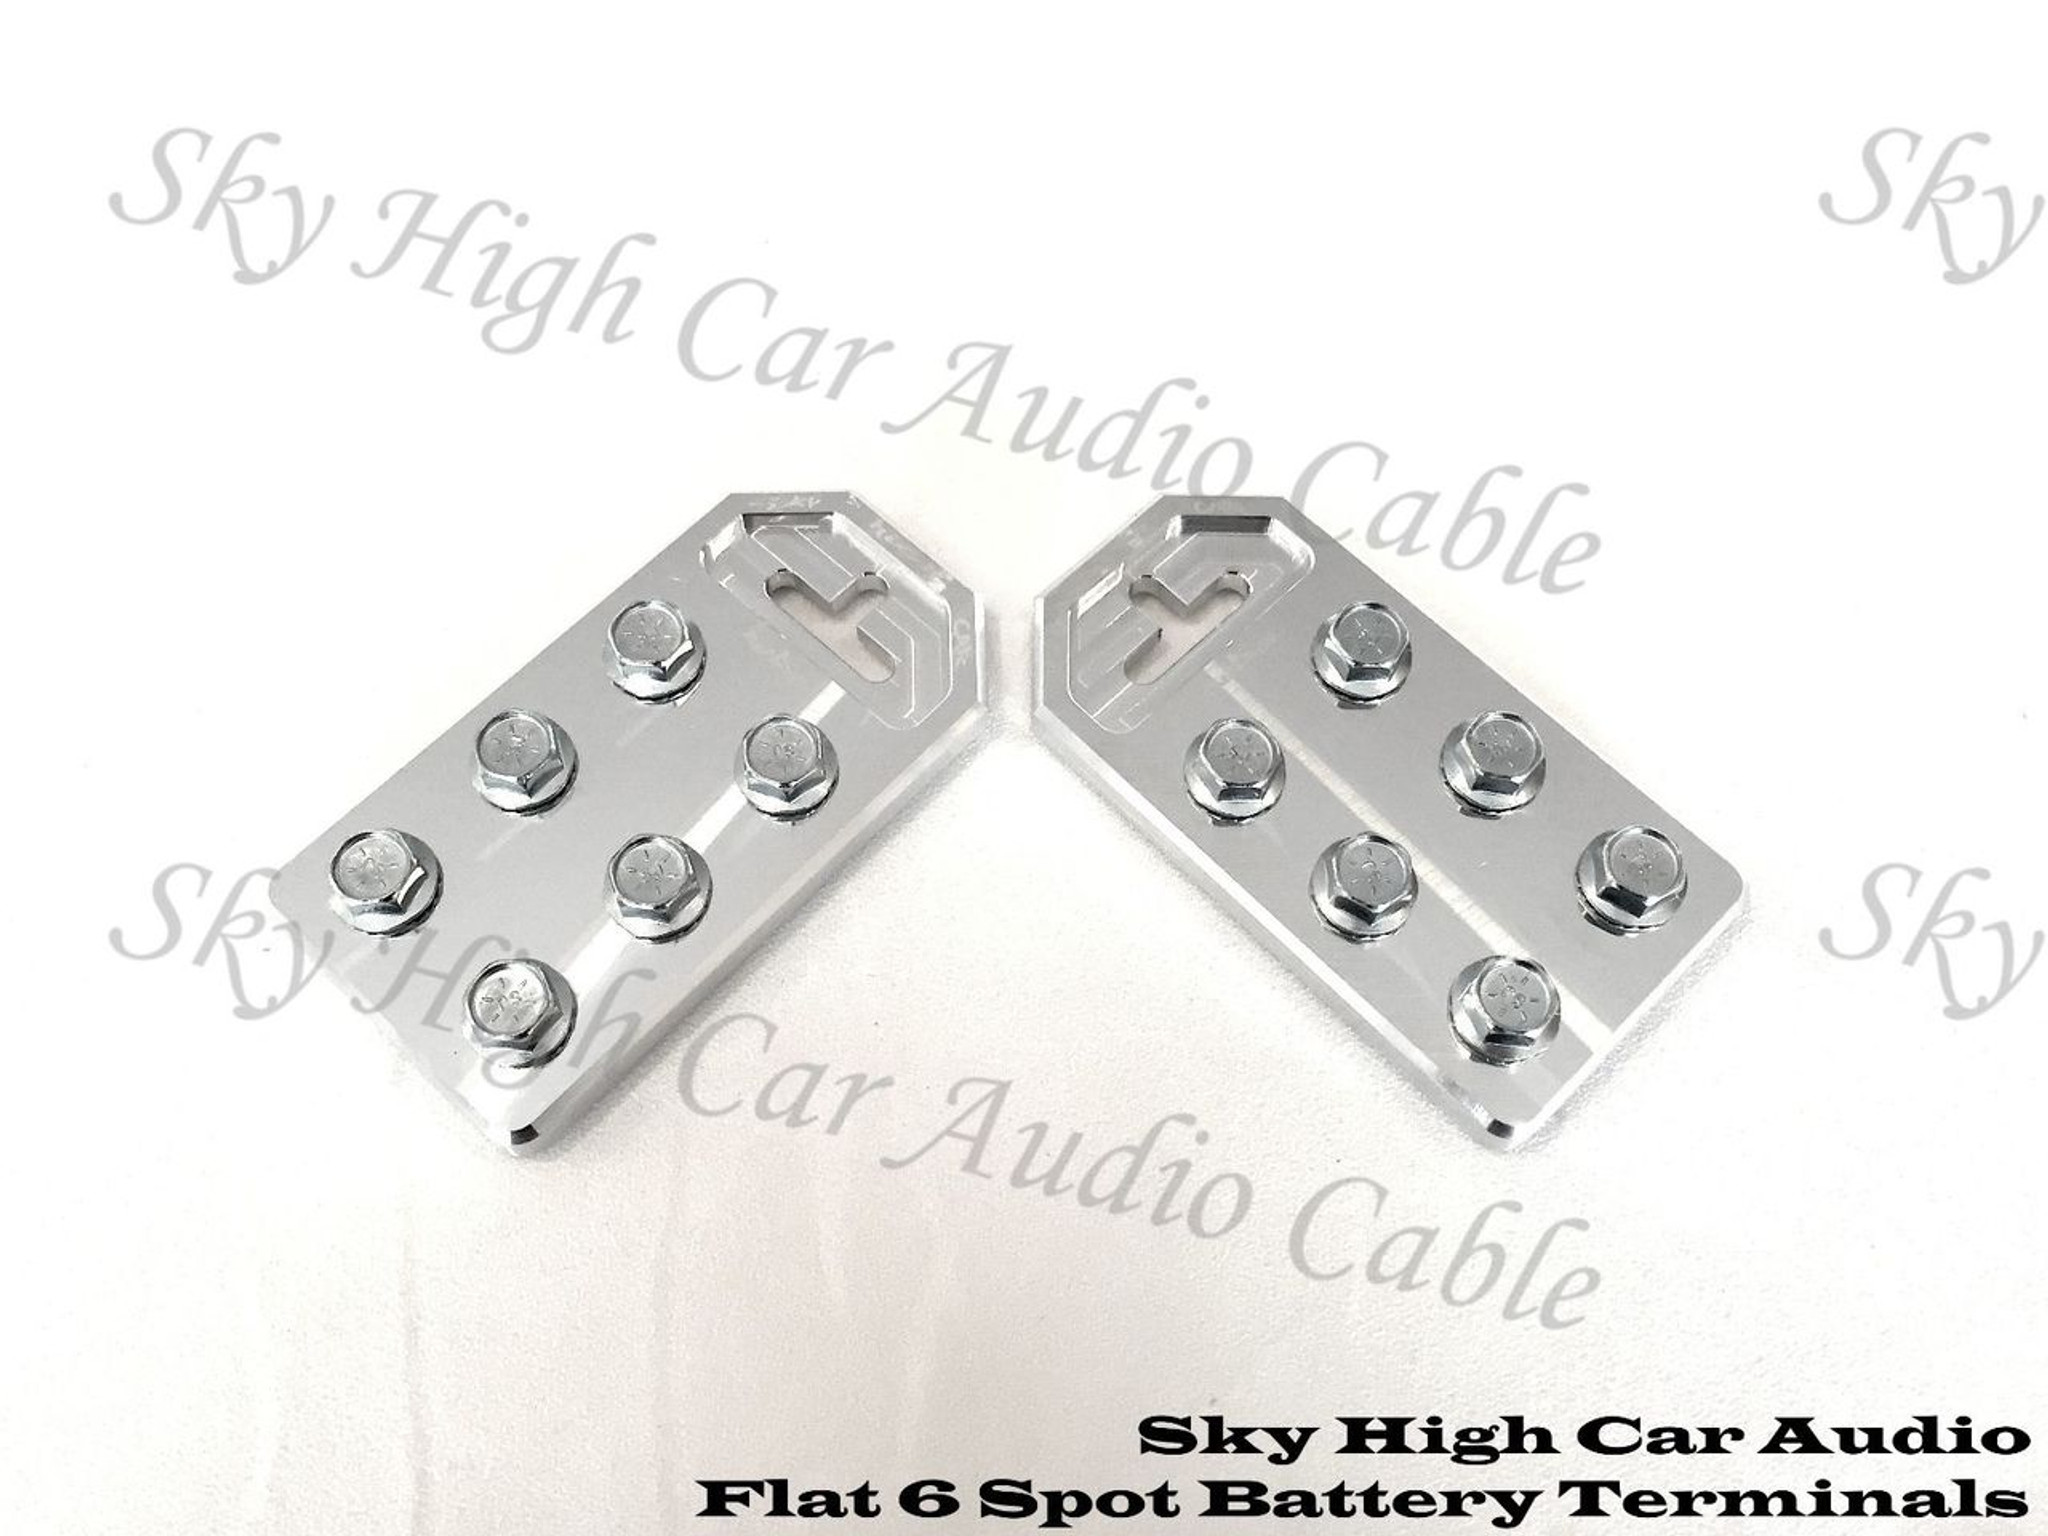 4 Spot Flat BATTERY TERMINALS BOLT USE ONLY Pair of Copper Sky High Any GA